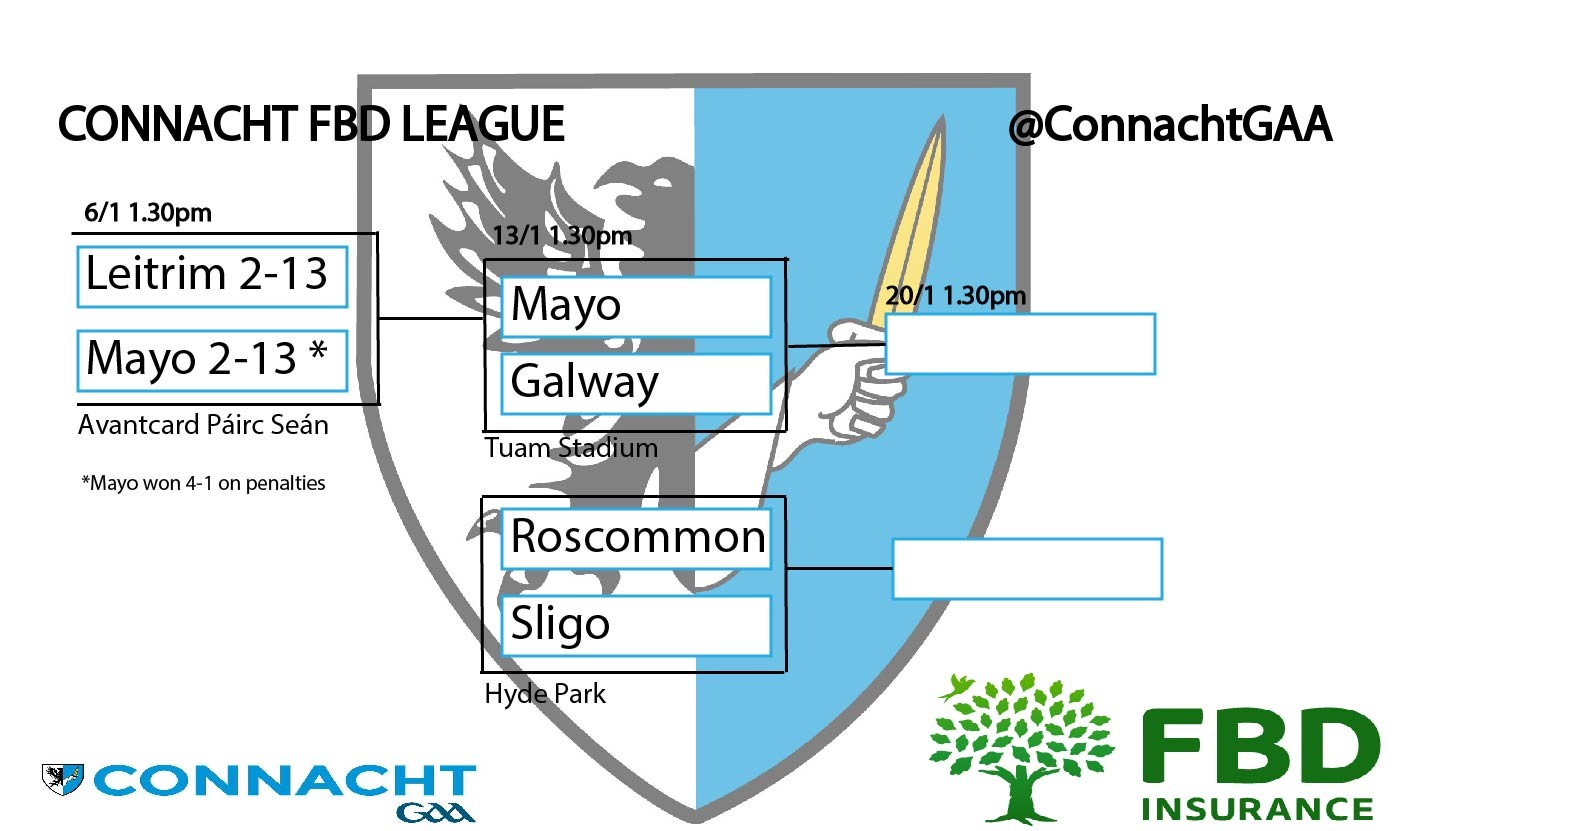 FBD INSURANCE LEAGUE SEMI FINALS INFORMATION